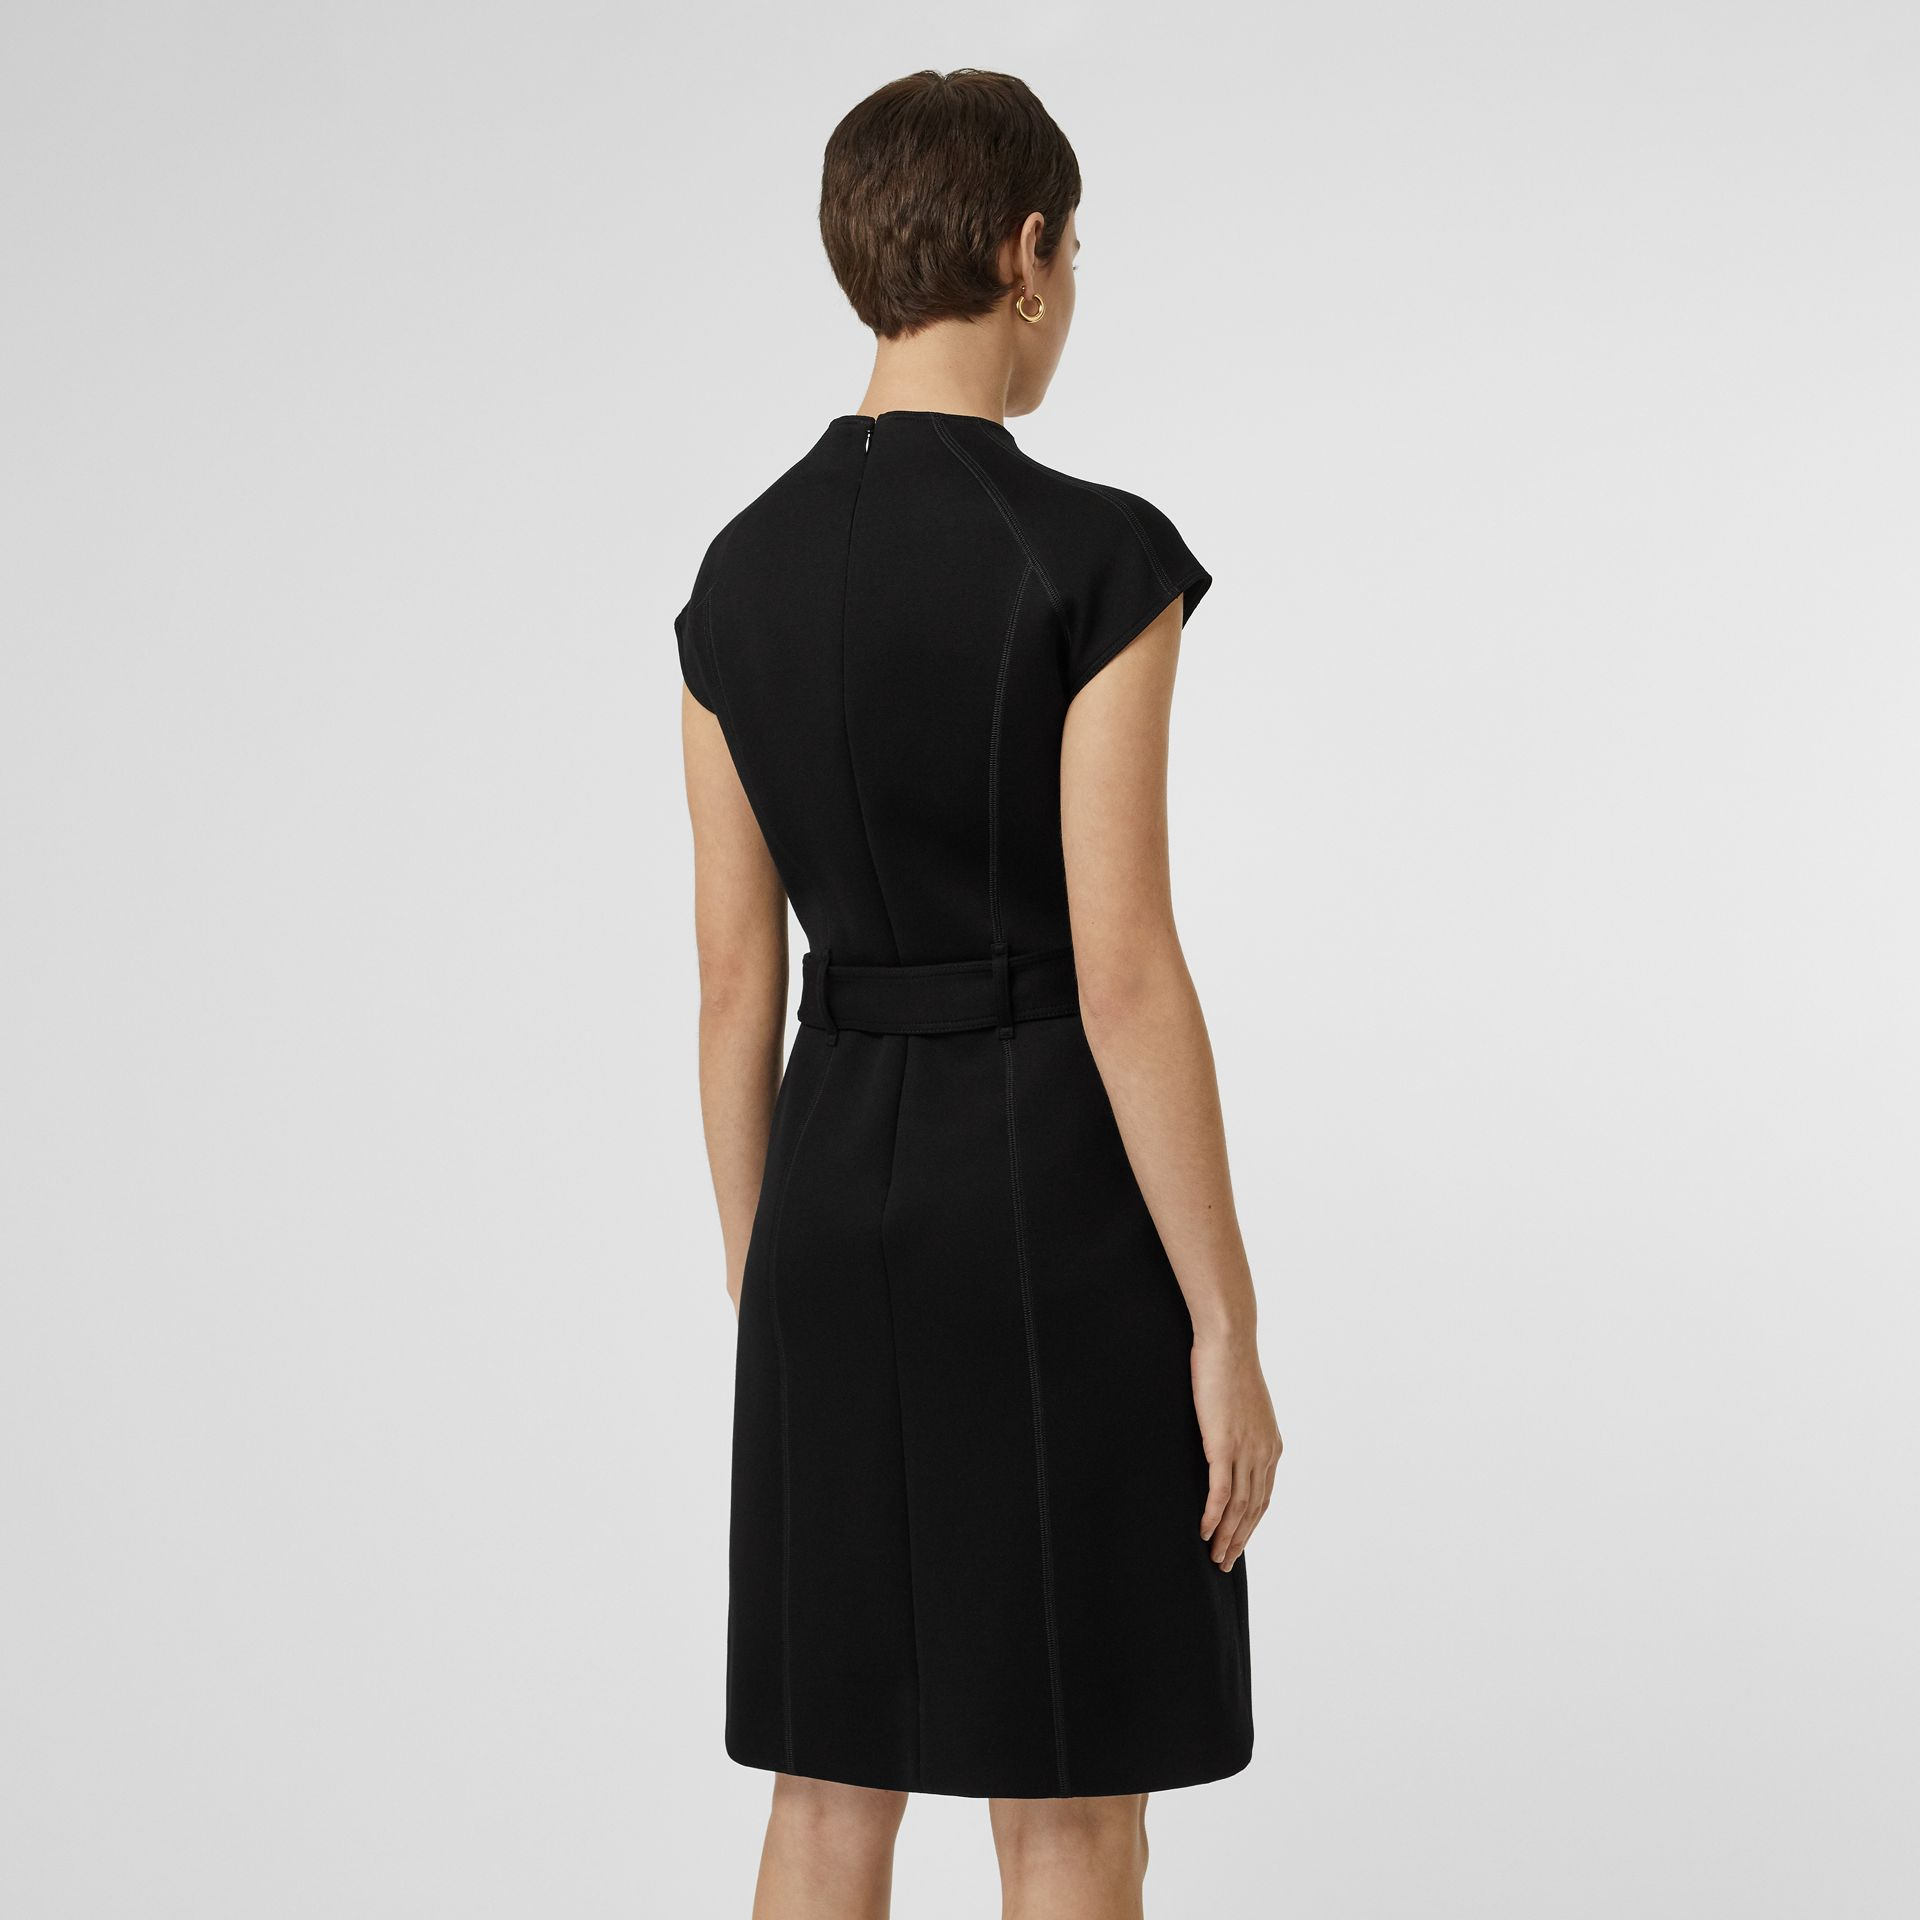 D-ring Detail Bonded Jersey Dress in Black - Women | Burberry - gallery image 2